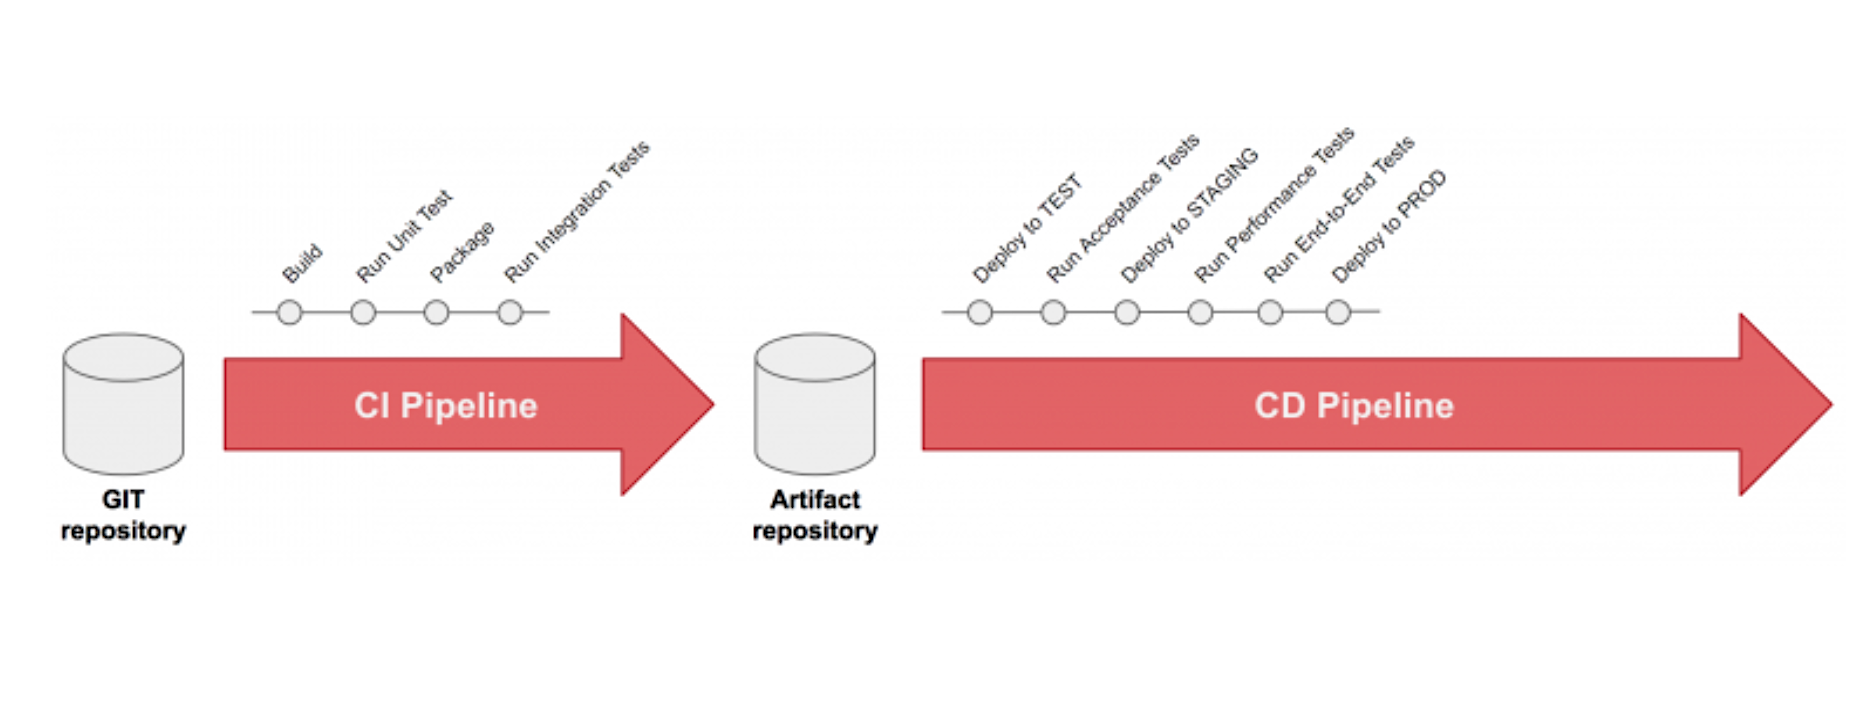 5 principles for deploying your API from a CI/CD pipeline